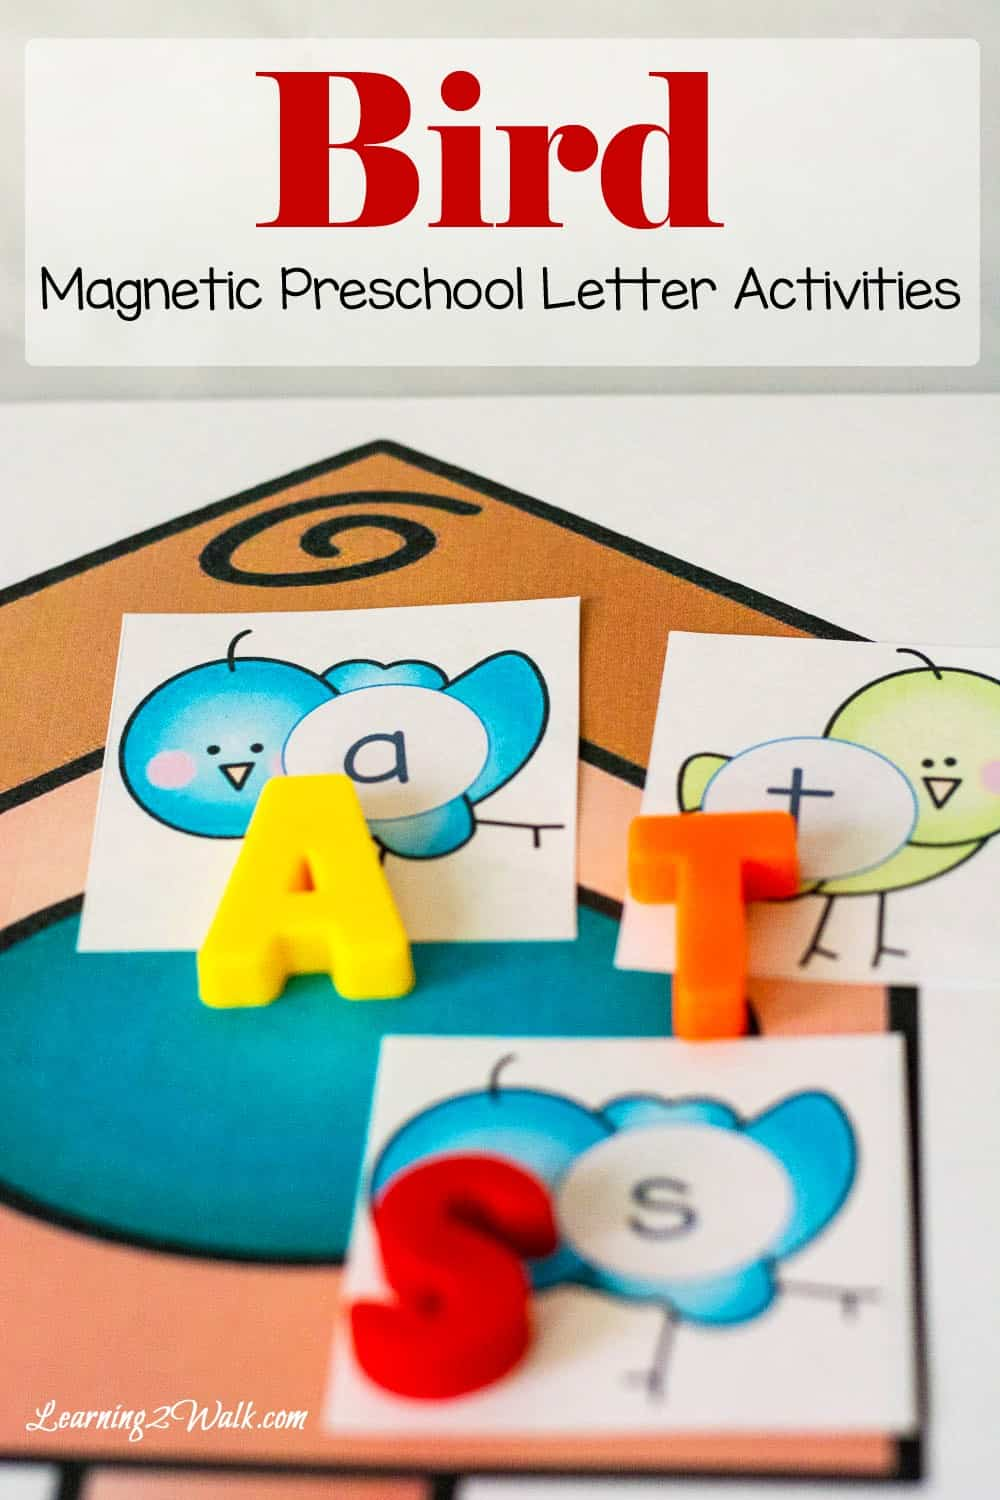 Grab your magnetic letters and use these super cute bird preschool letter activities cards to help your kids work on letter recognition